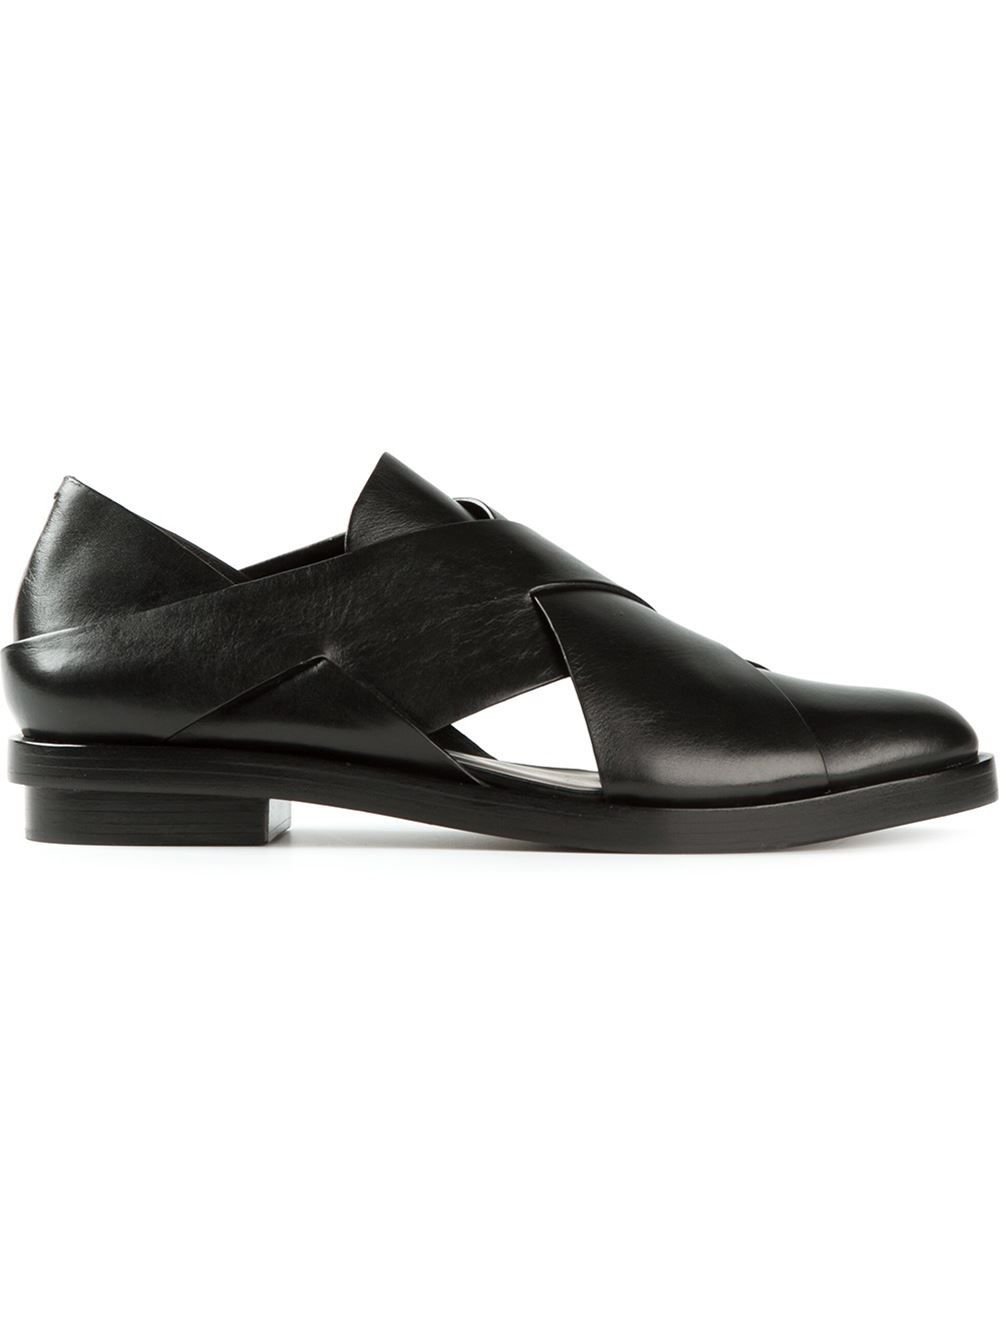 4cb5f2a3b Alexander Wang `morgan` Loafers - Feathers - Farfetch.com Designer Shoes On  Sale